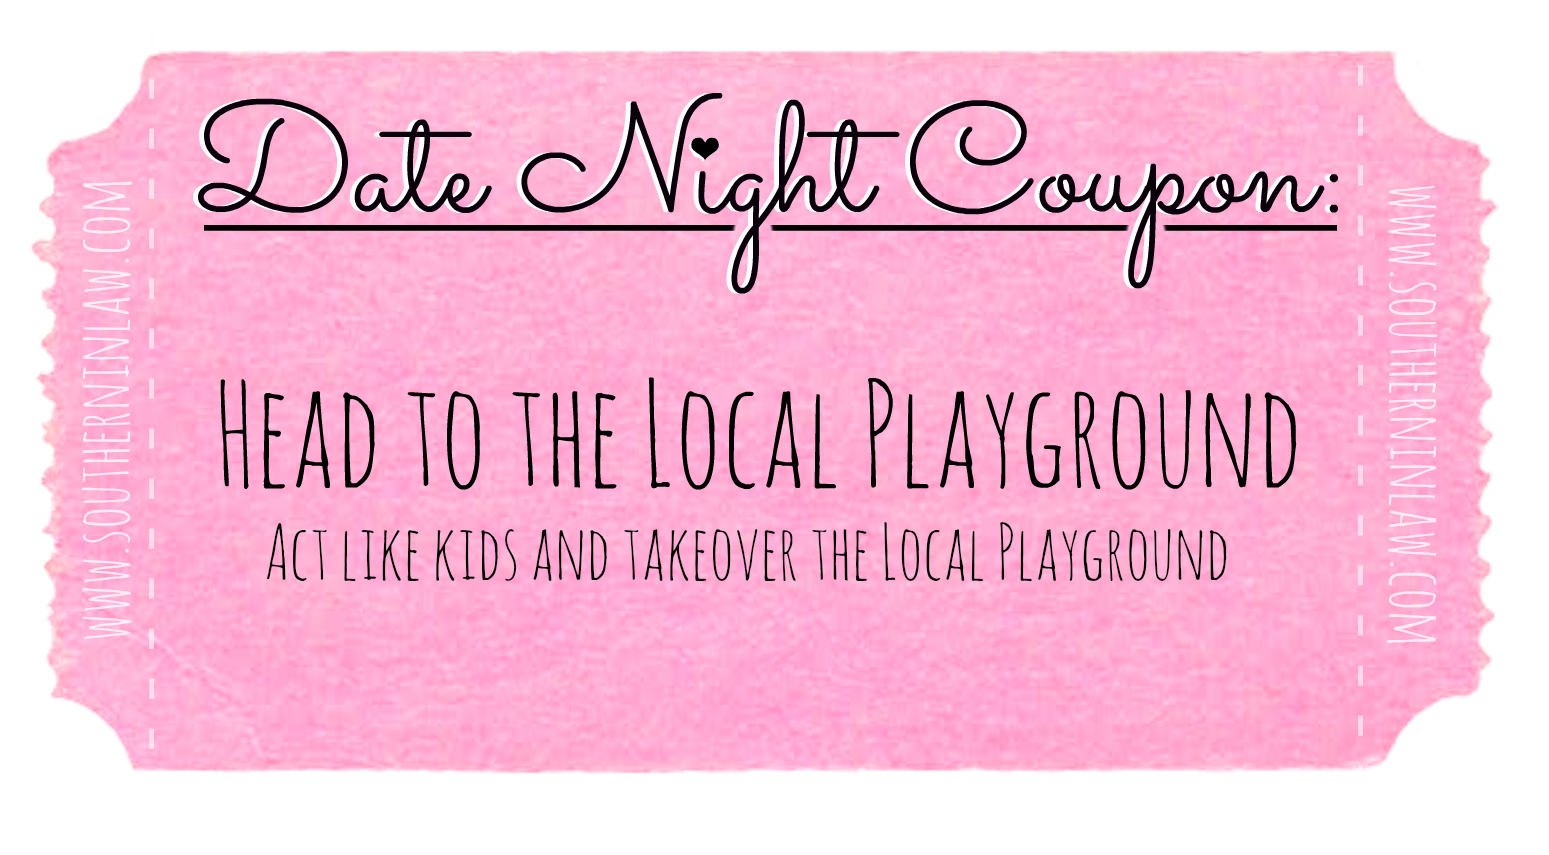 Affordable Date Ideas - Cheap Date Ideas Coupons - Head to the local playground